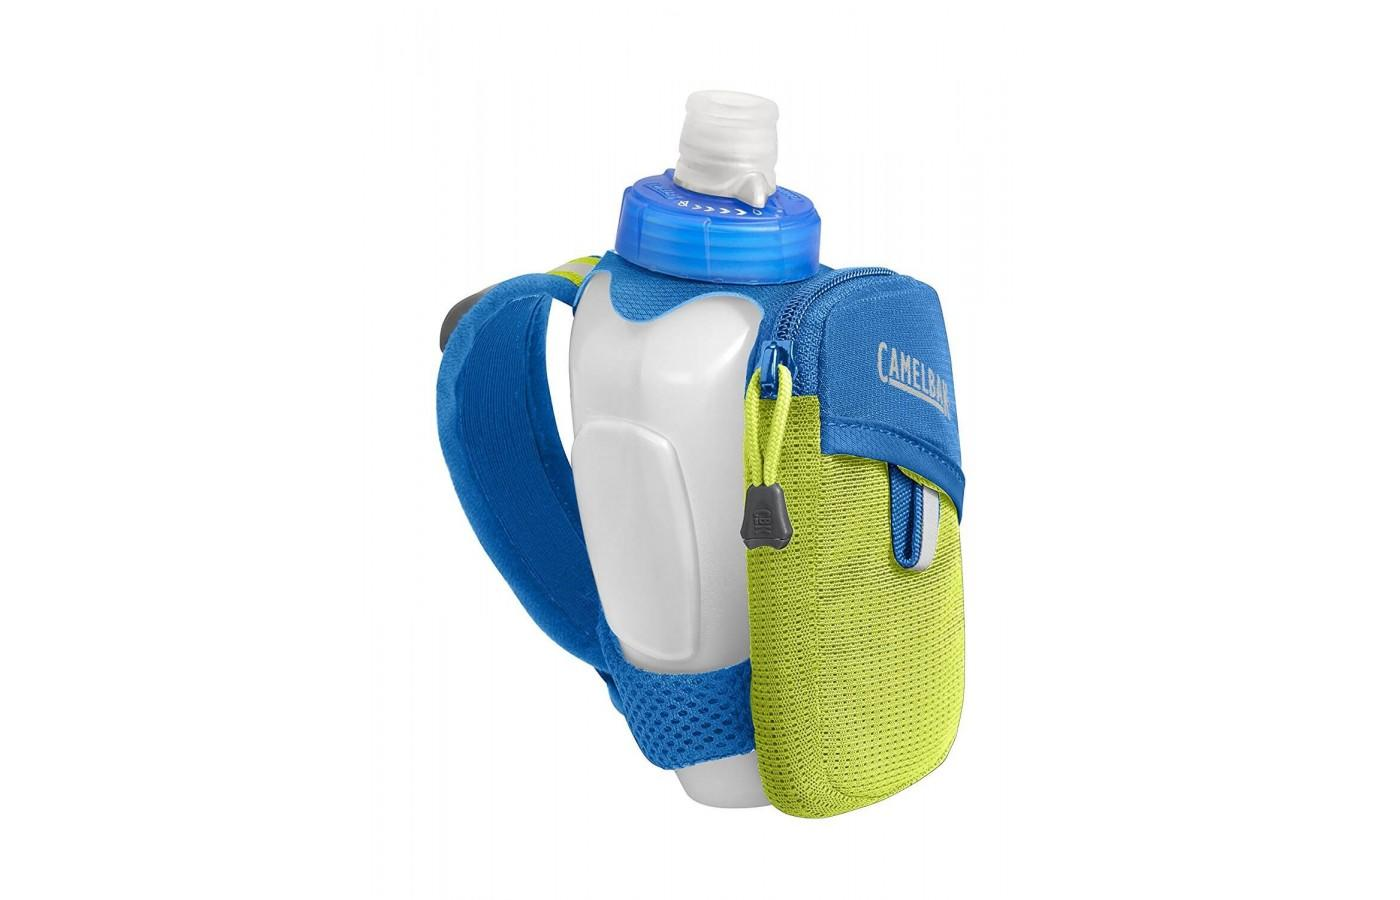 The Camelbak Arc Quick Grip Handheld Water Bottle has a small zippered pocket